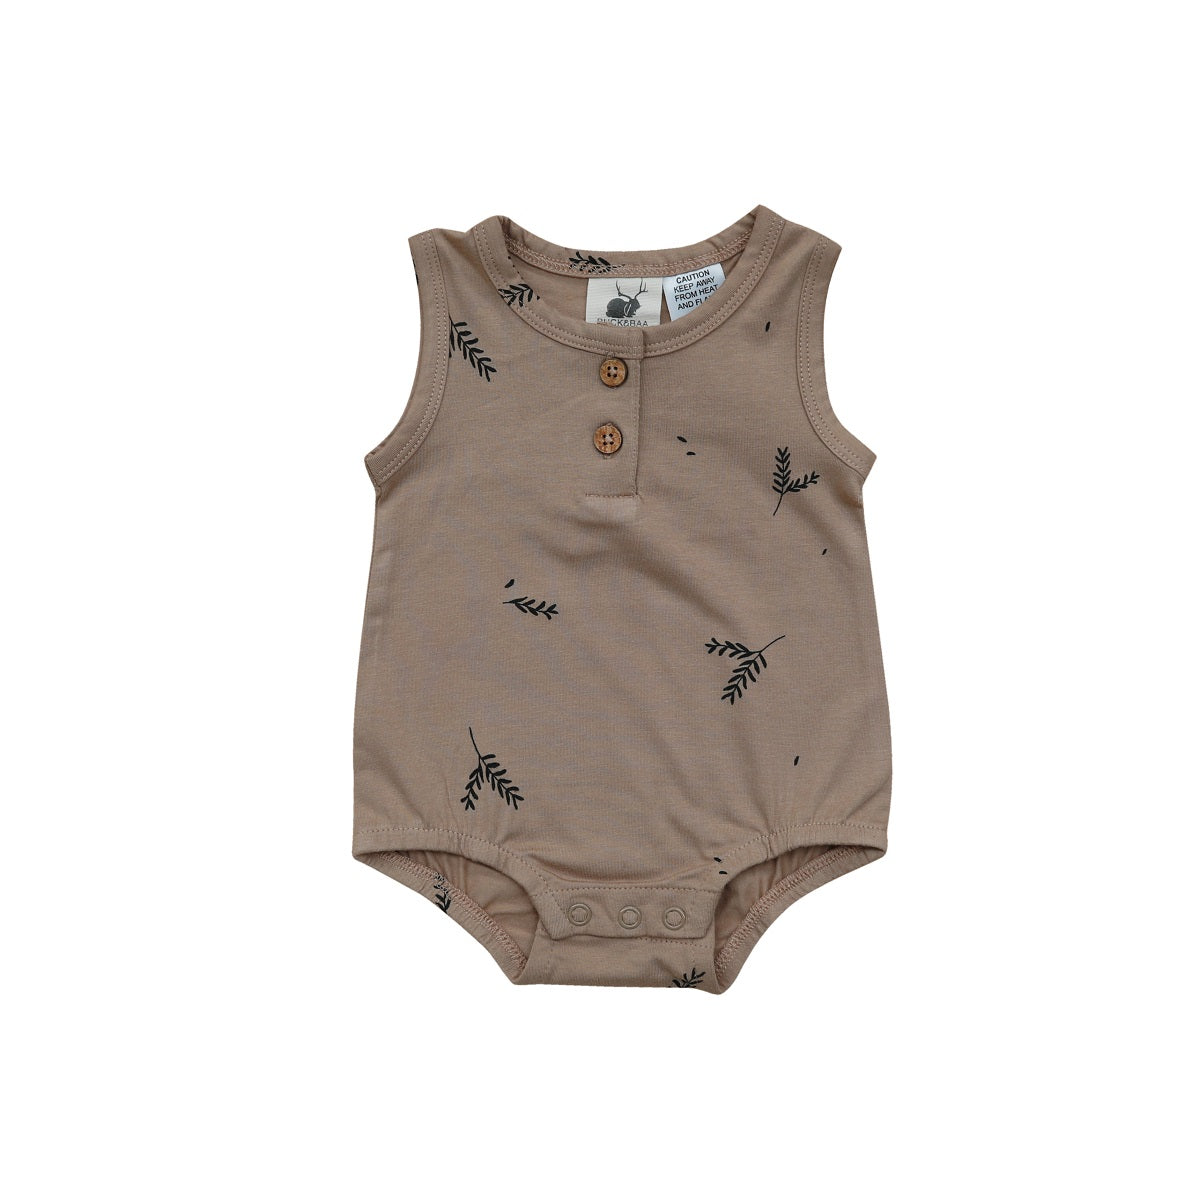 Late Bubble Romper (last one, size 3 years)